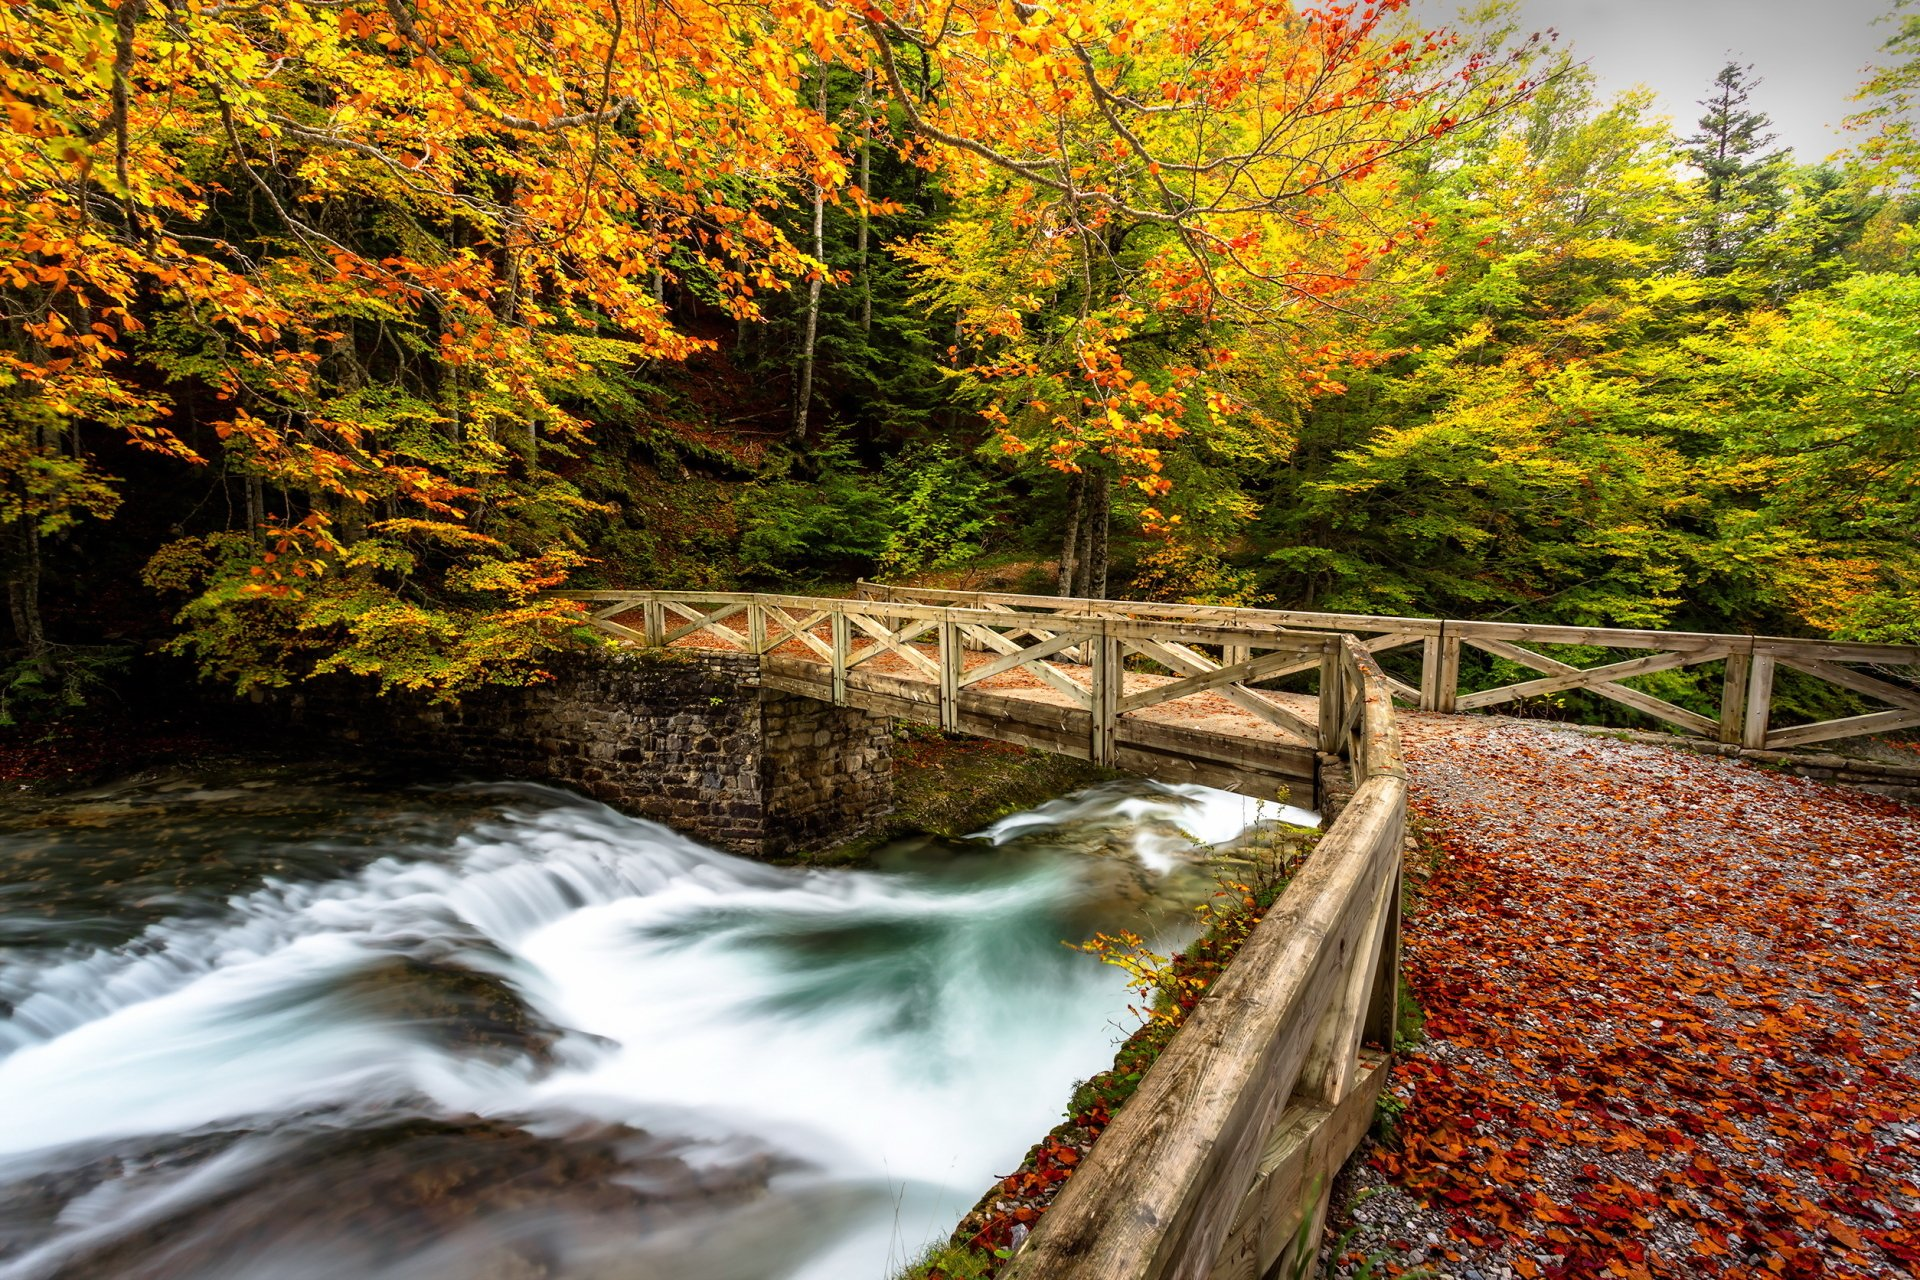 Man Made - Bridge  Park Fall Tree Foliage River Wallpaper